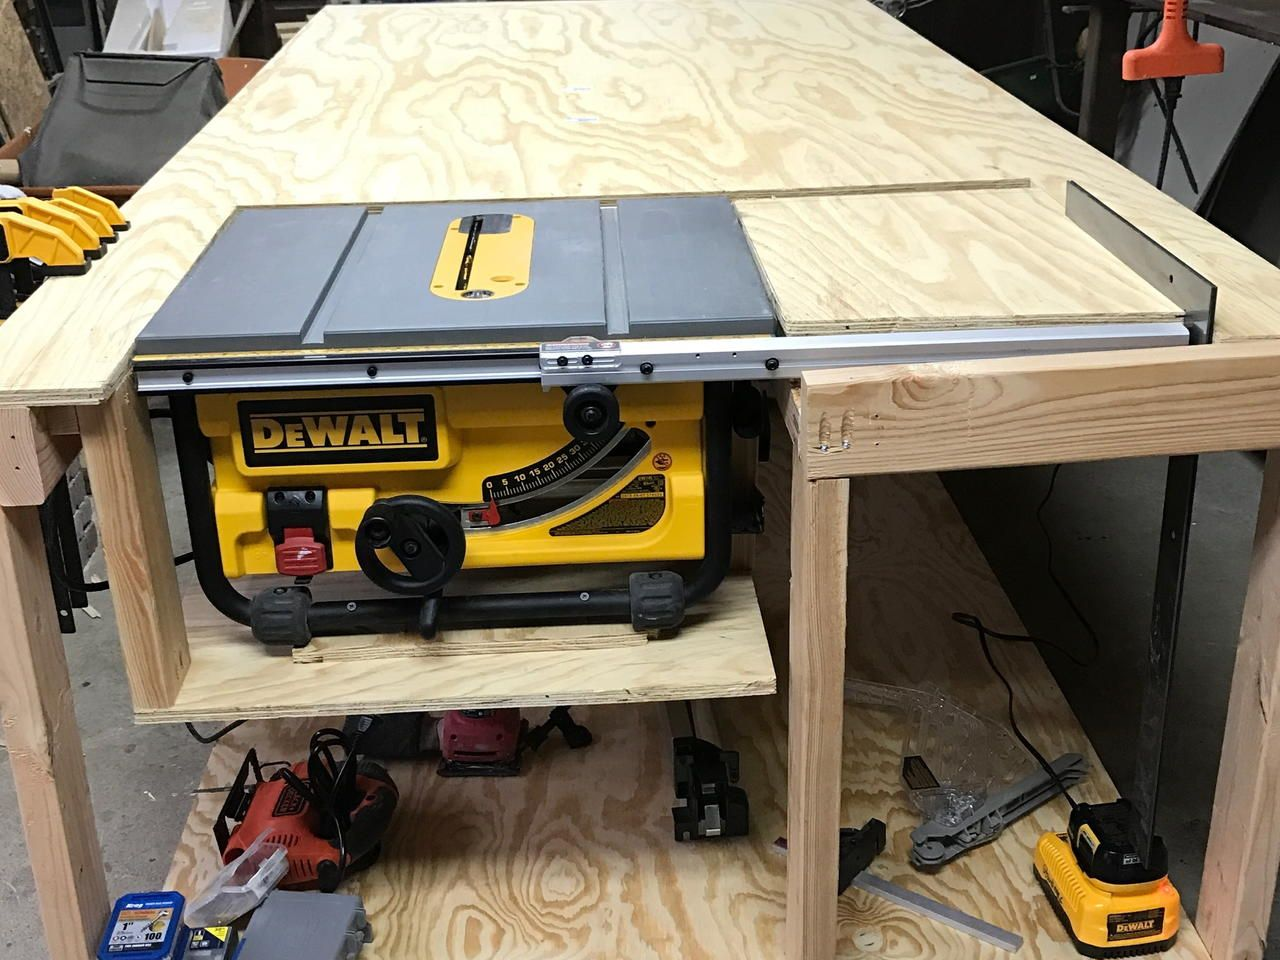 Pin By Gabstyx On Workbench Plans Diy In 2020 Woodworking Bench Plans Table Saw Workbench Table Saw